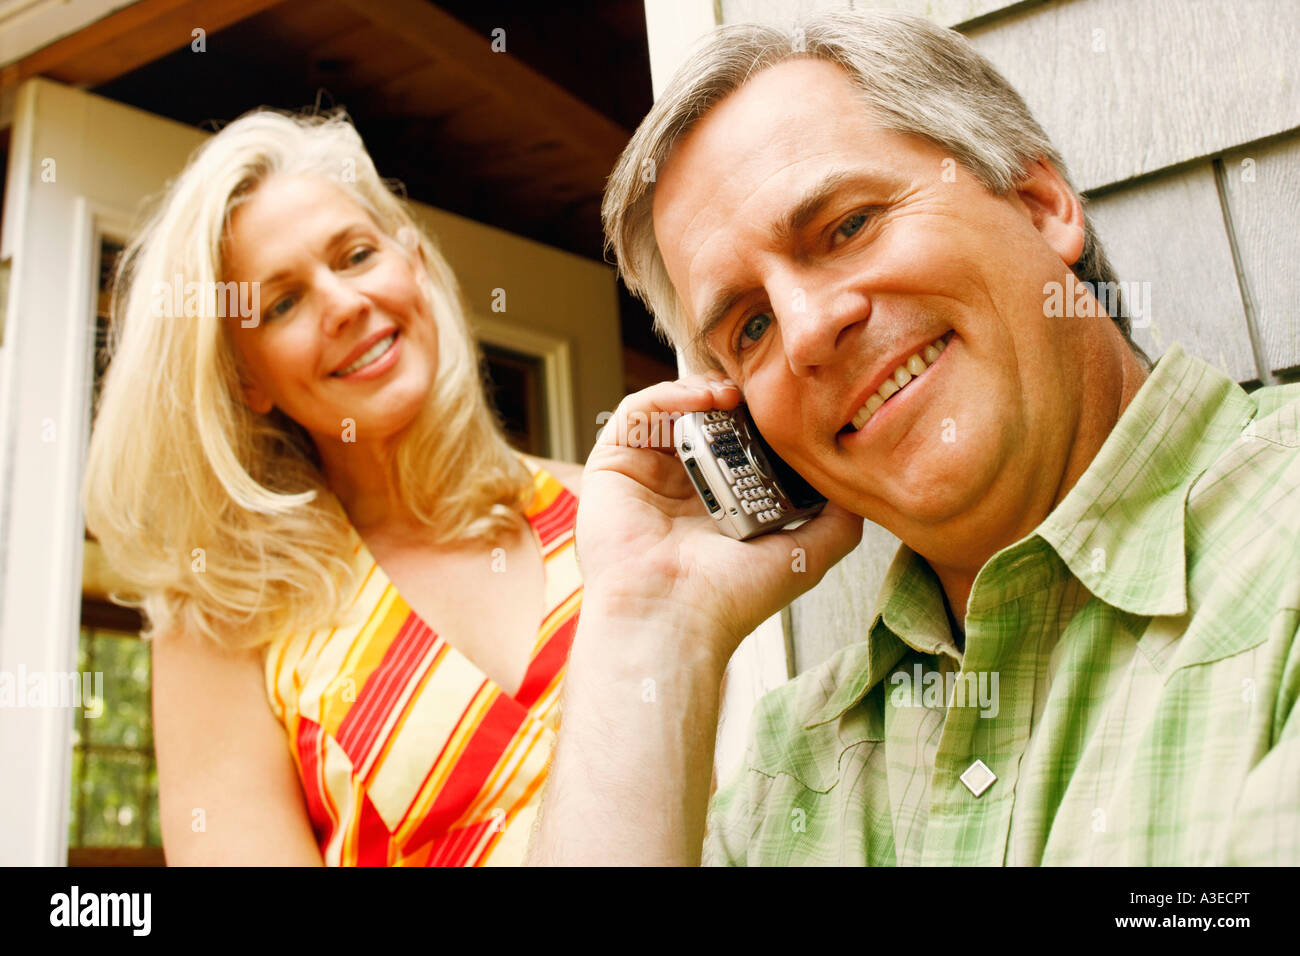 Low angle view of a mature man talking on a mobile phone with a mature woman smiling behind him - Stock Image